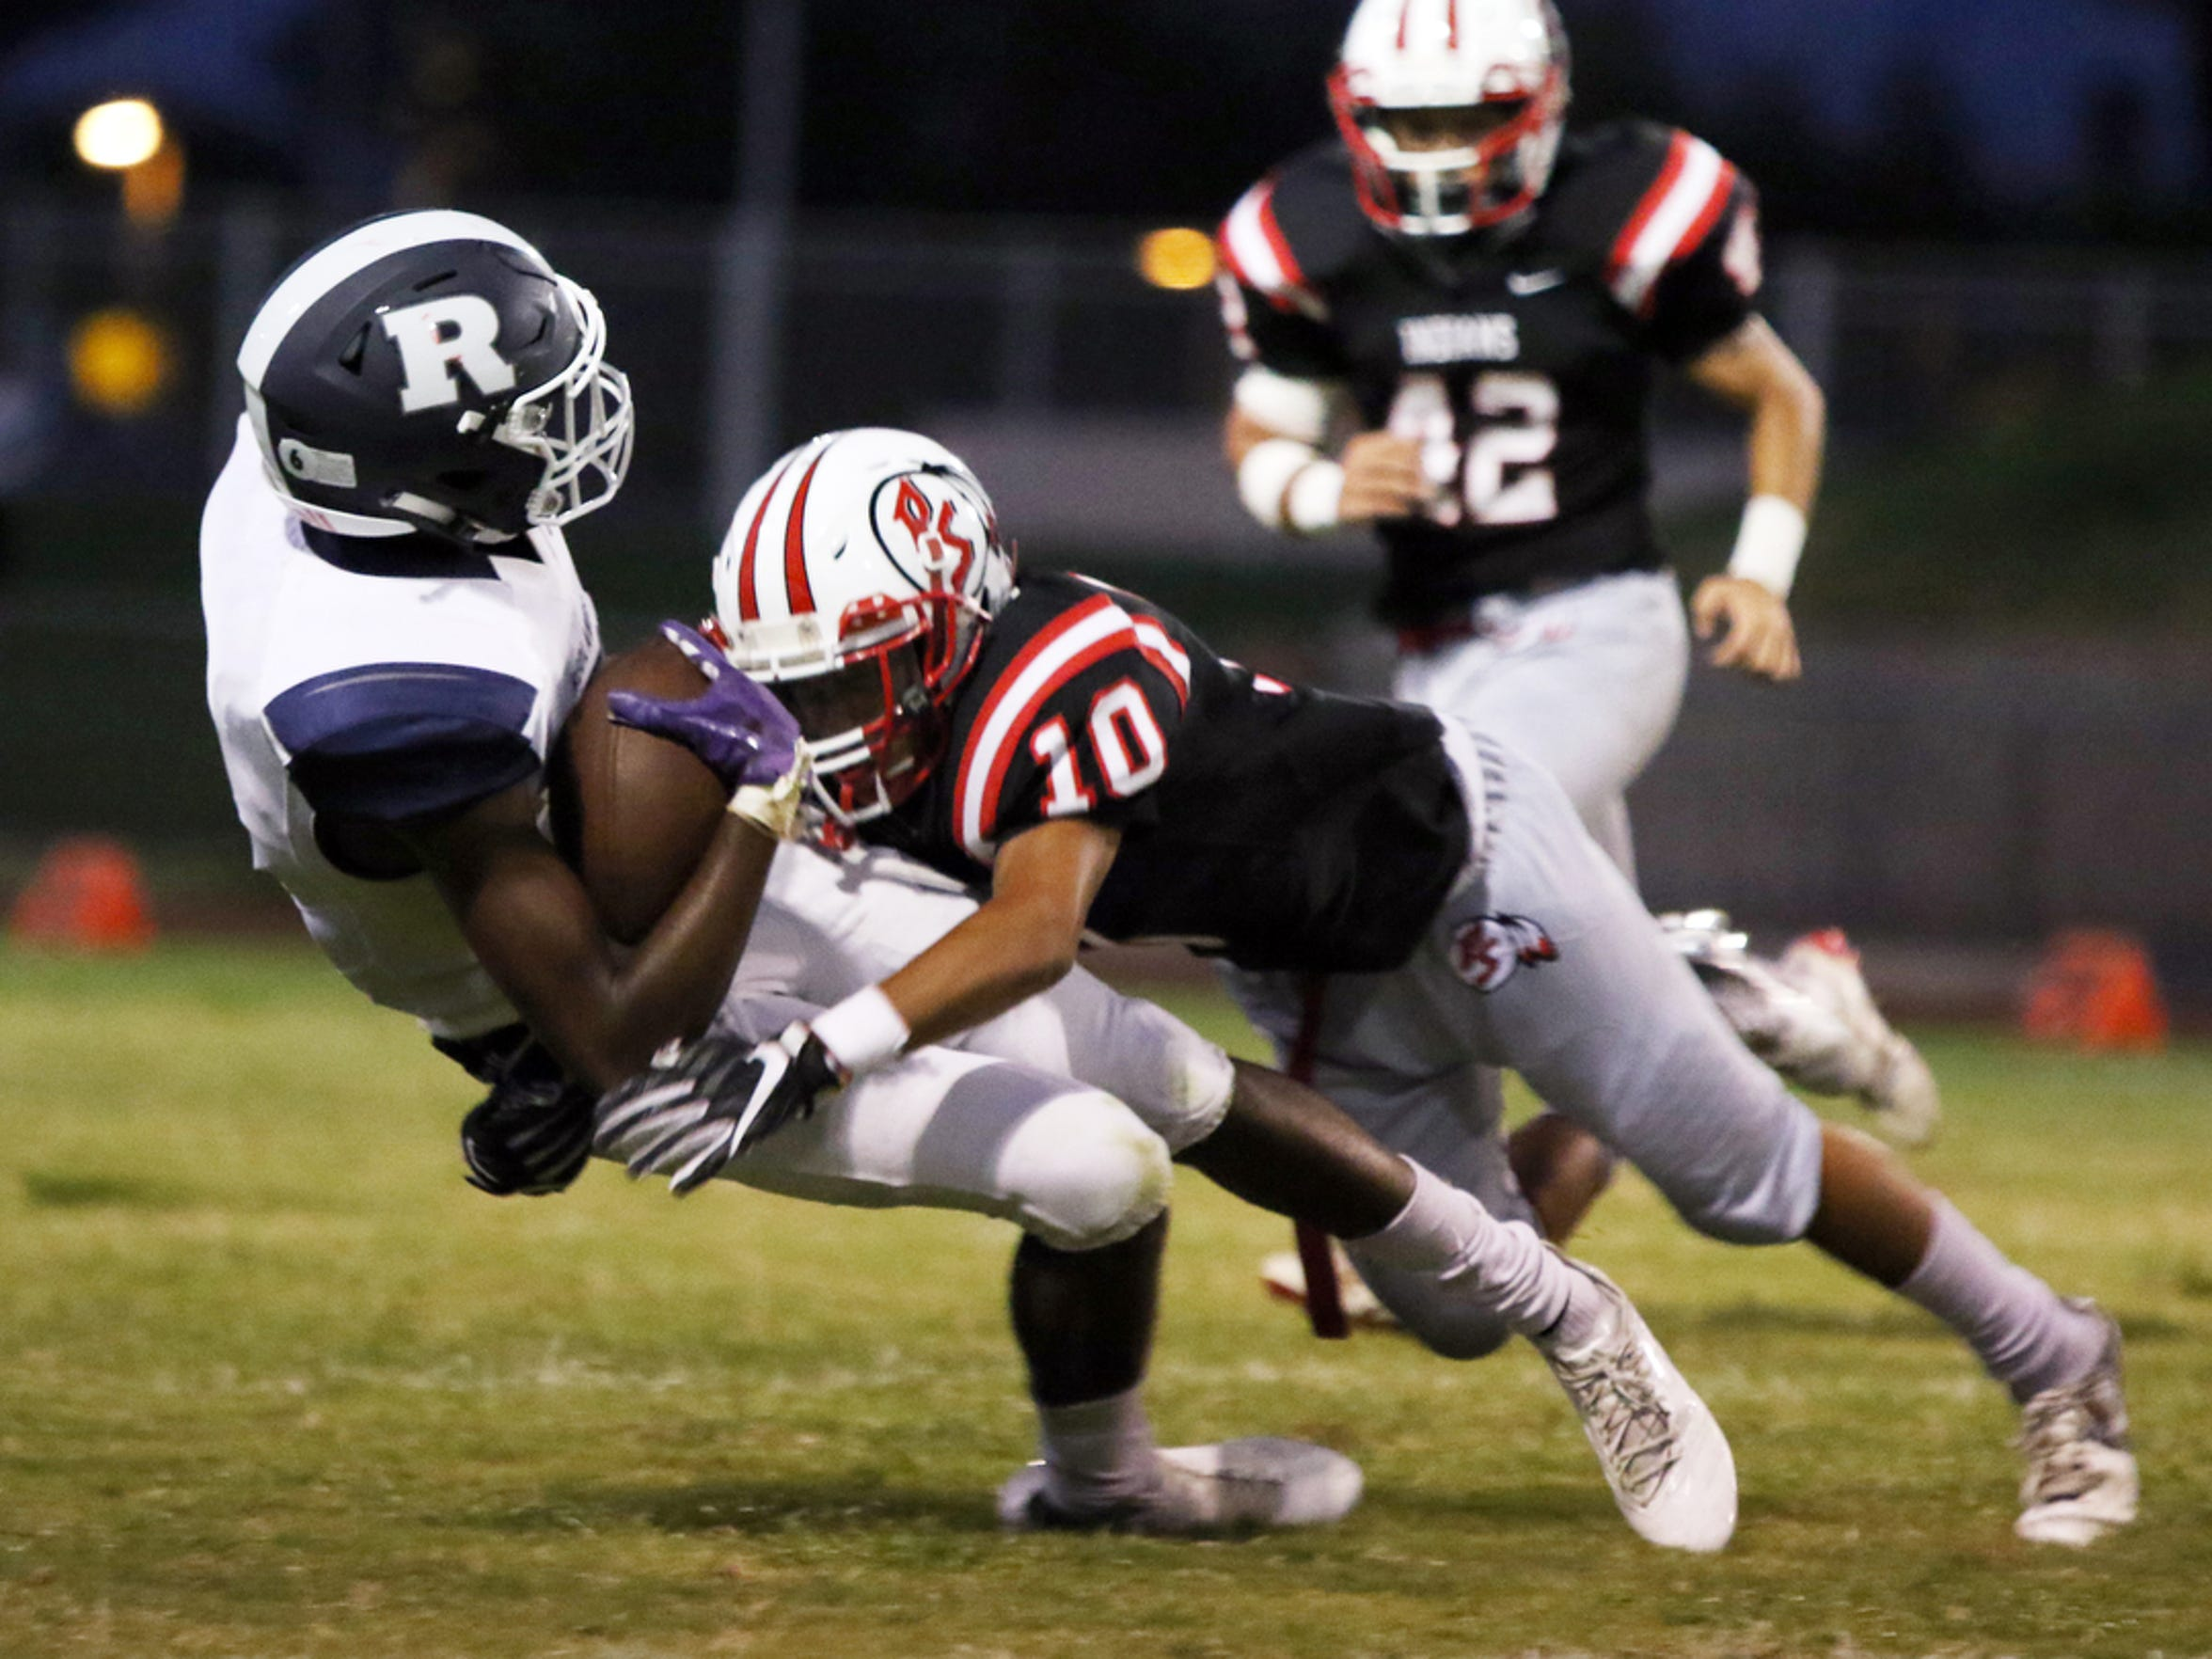 Palm Springs' Miles Crenshaw, shown here making a tackle against Redlands in 2018, is considered by many opposing players to be the fastest player in the Coachella Valley.